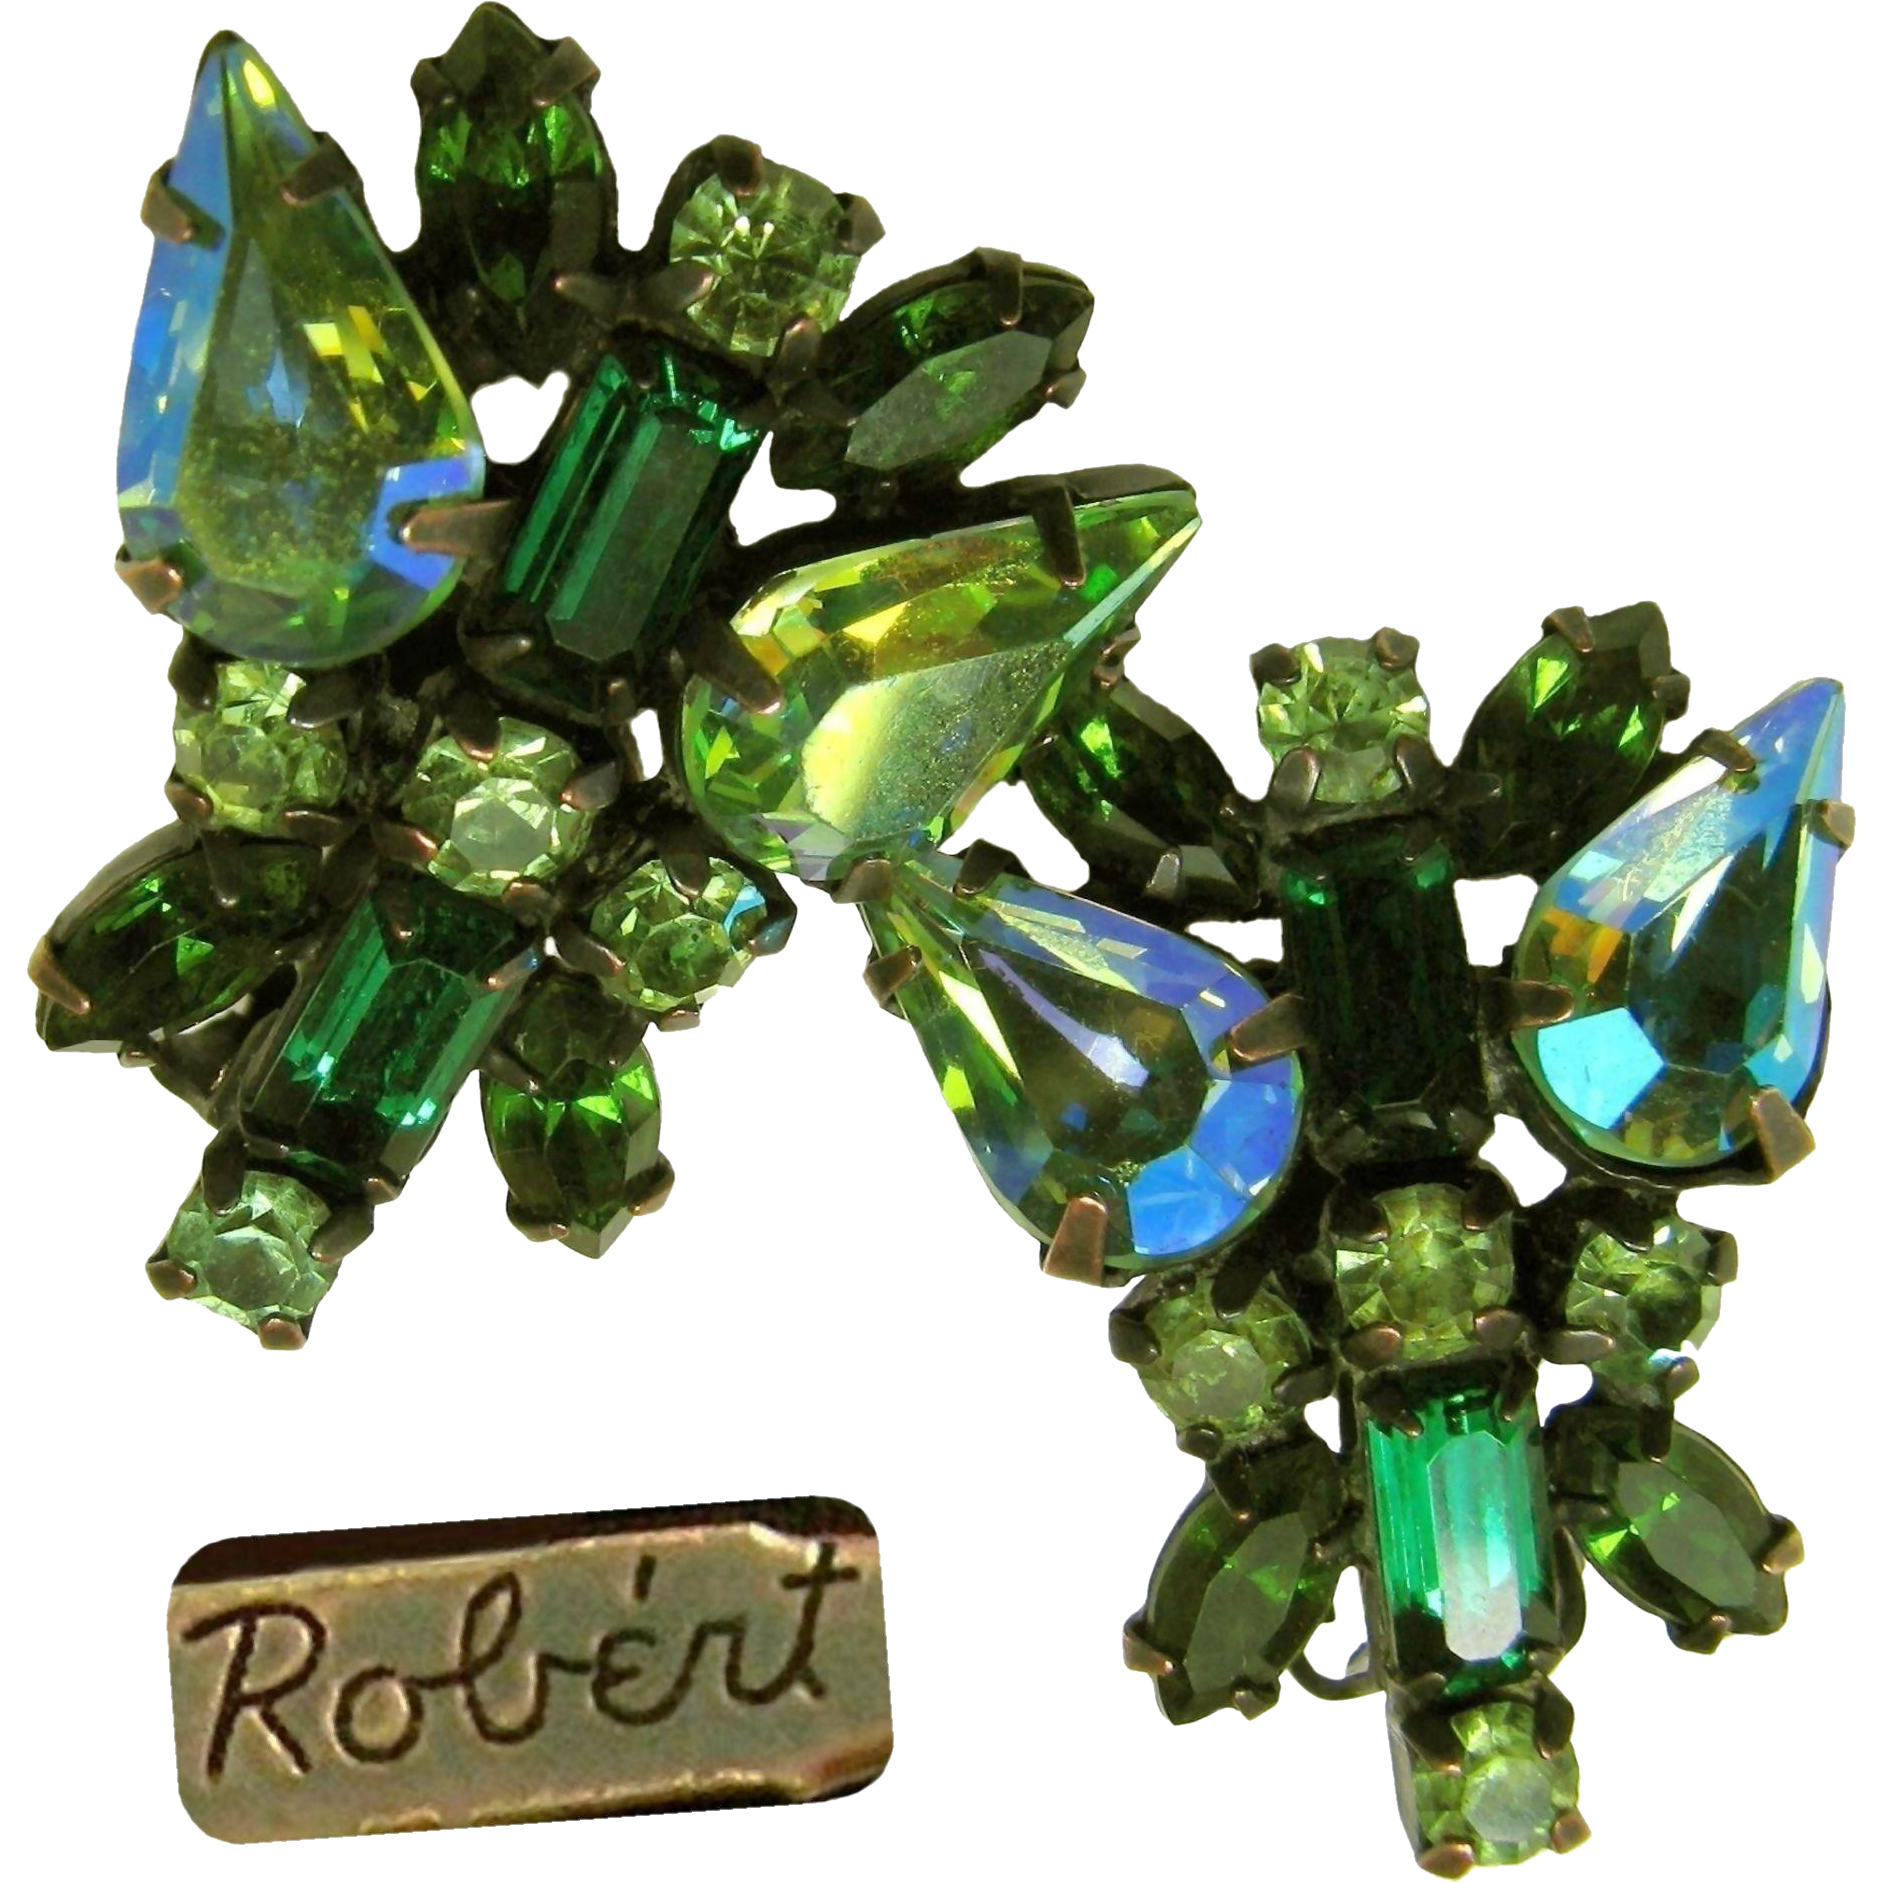 Vintage ROBERT Earrings in Shades of Green Rhinestones c.1950's